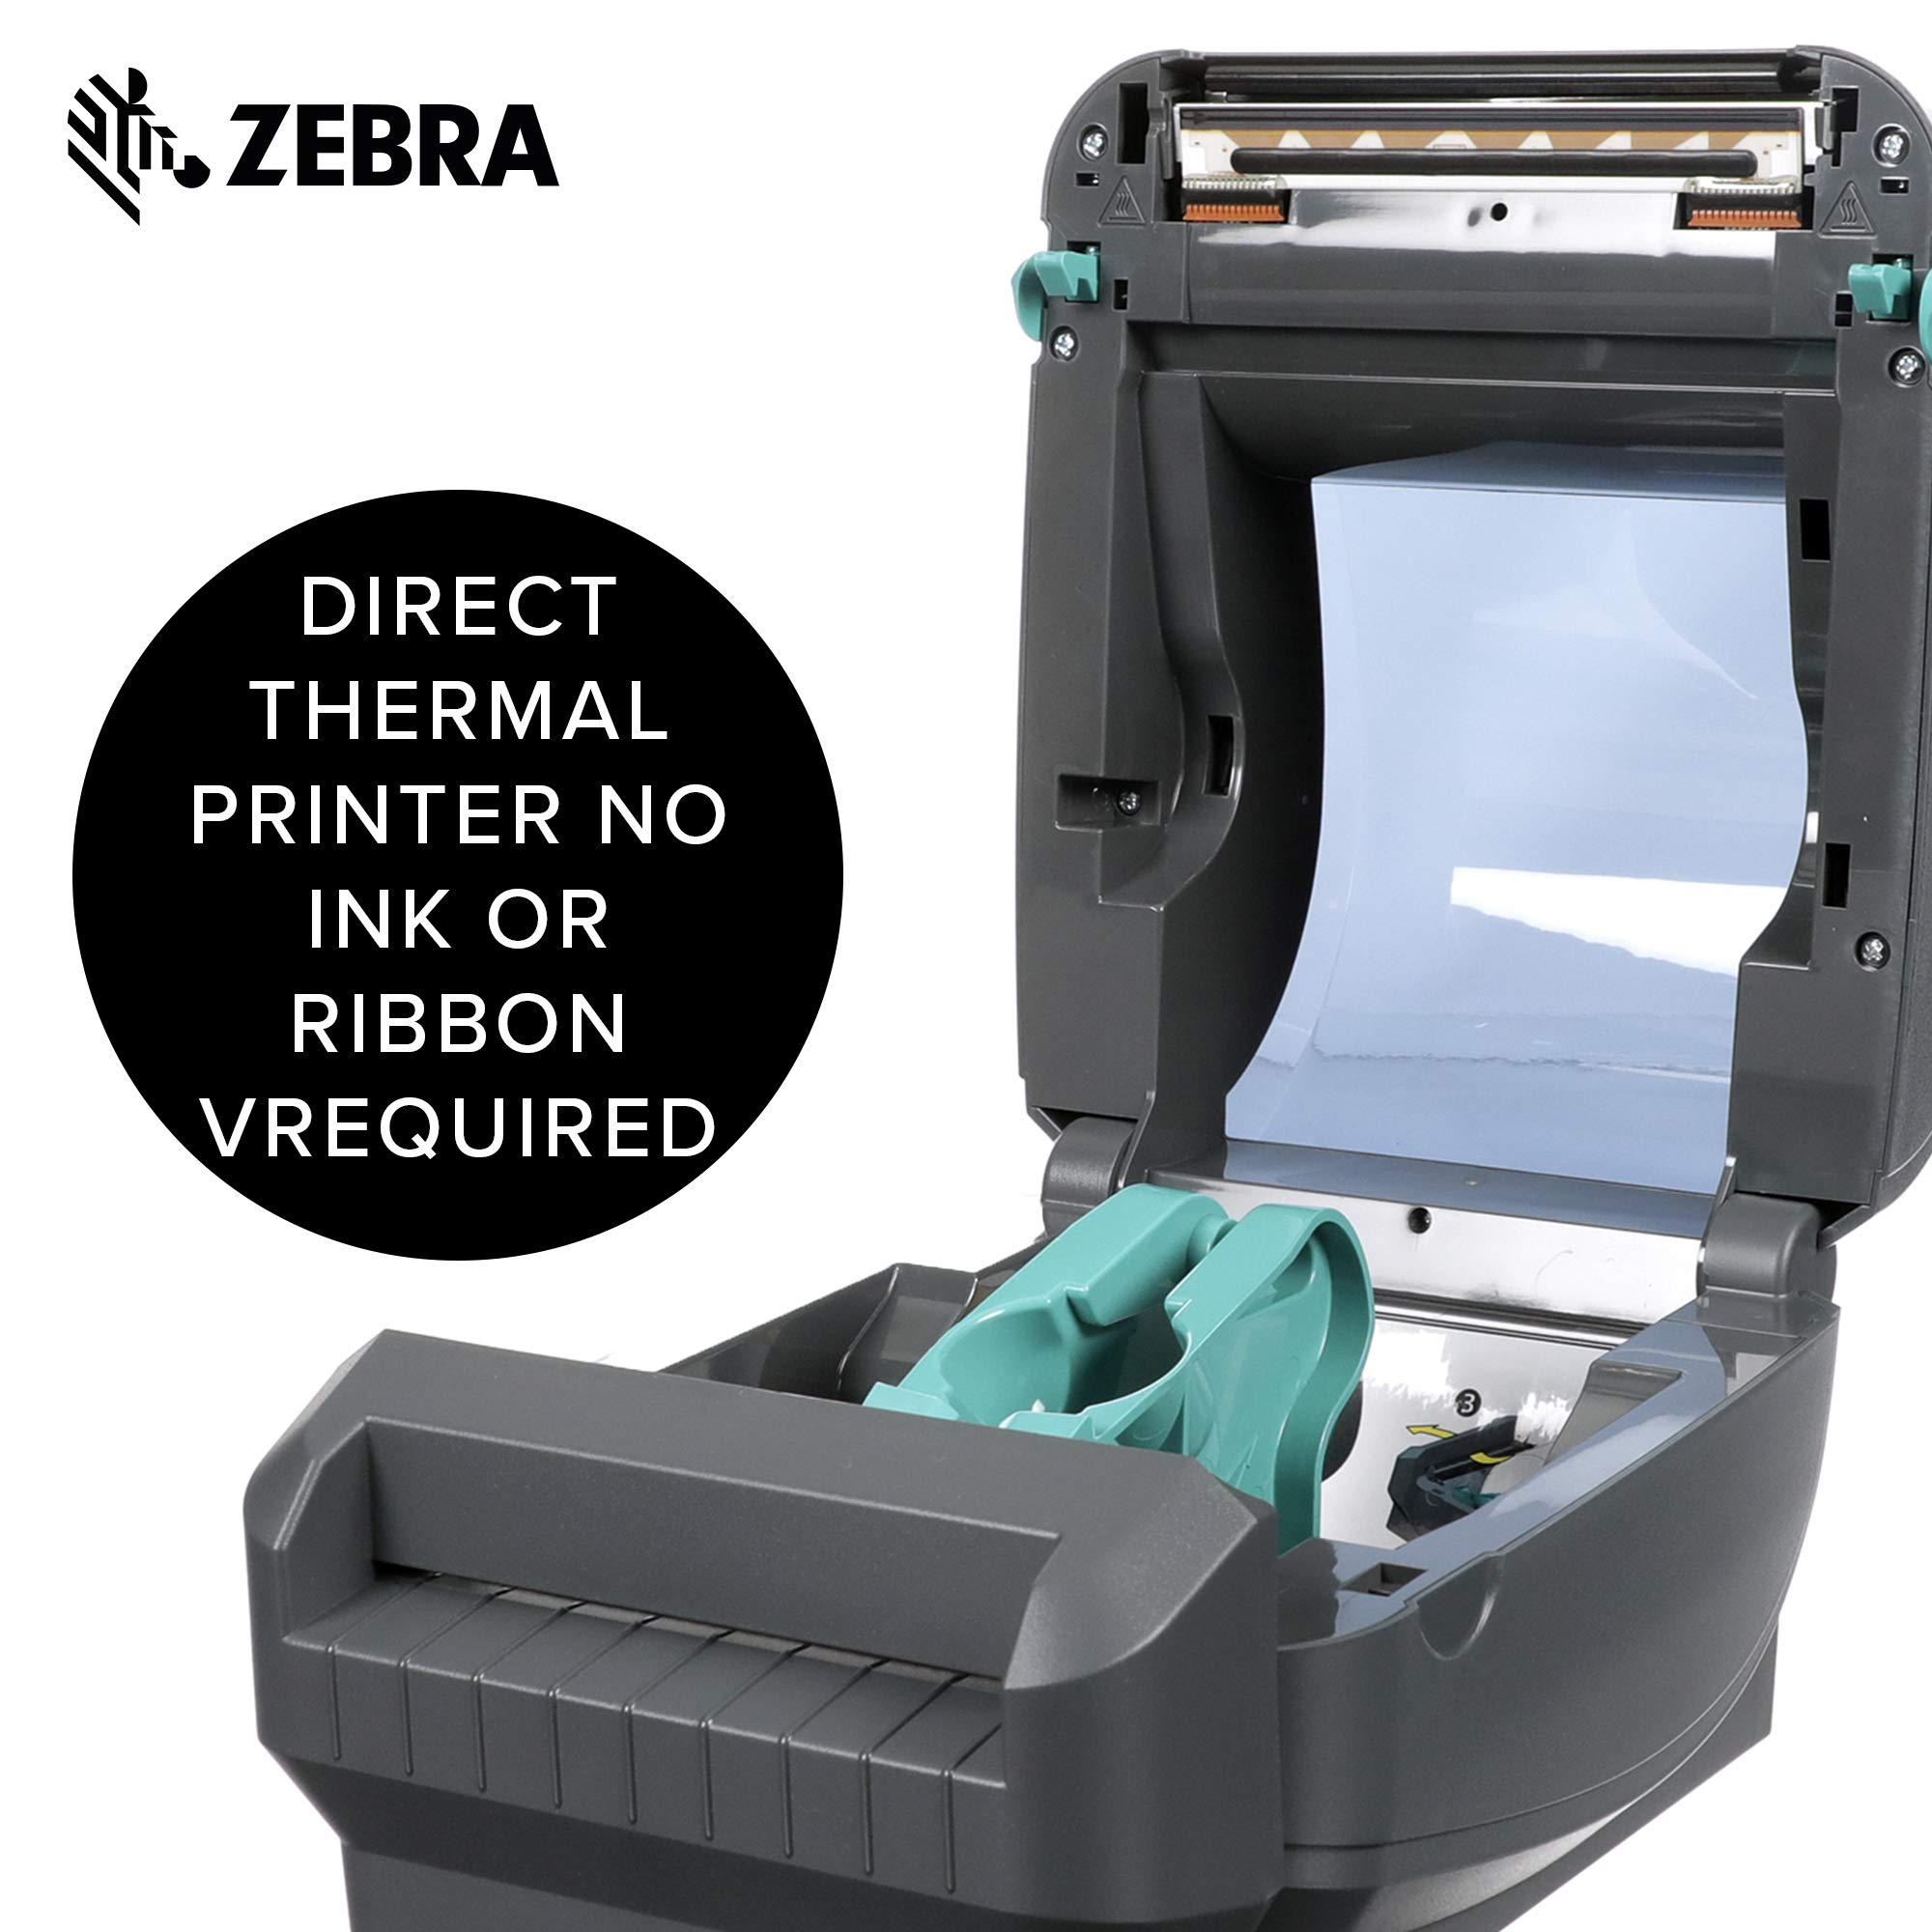 Zebra - GX420d Direct Thermal Desktop Printer for Labels, Receipts,  Barcodes, Tags, and Wrist Bands - Print Width of 4 in - USB, Serial, and  Parallel